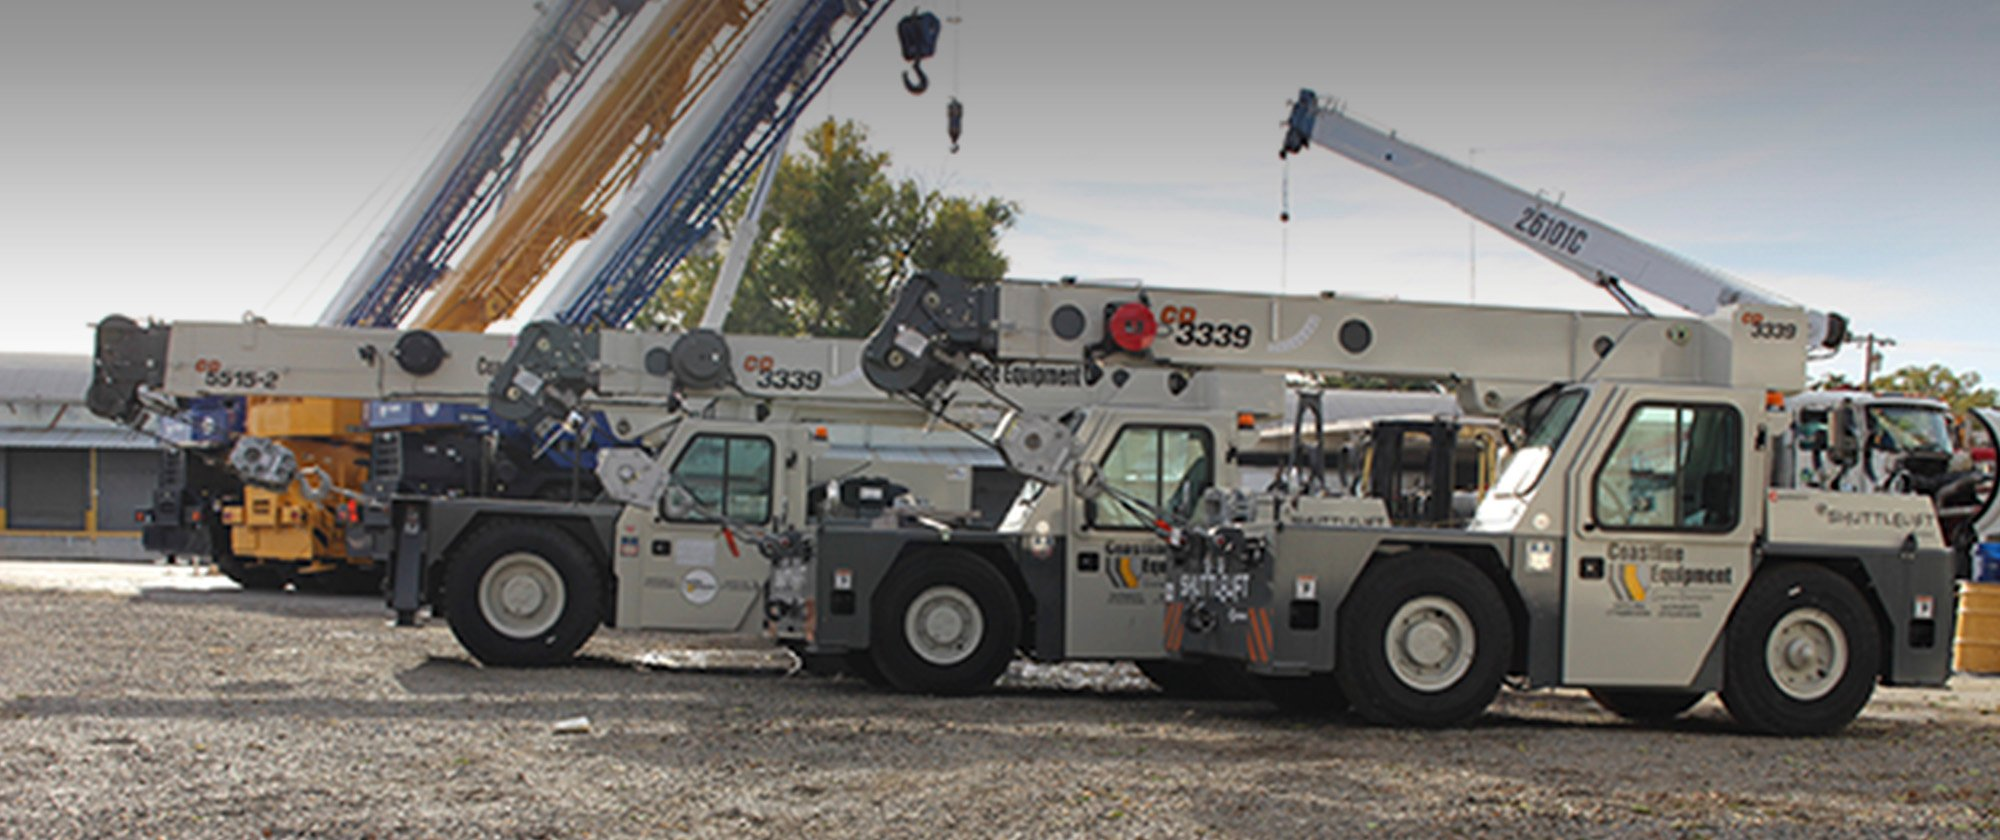 Crane Service | Coastline Equipment Crane Division